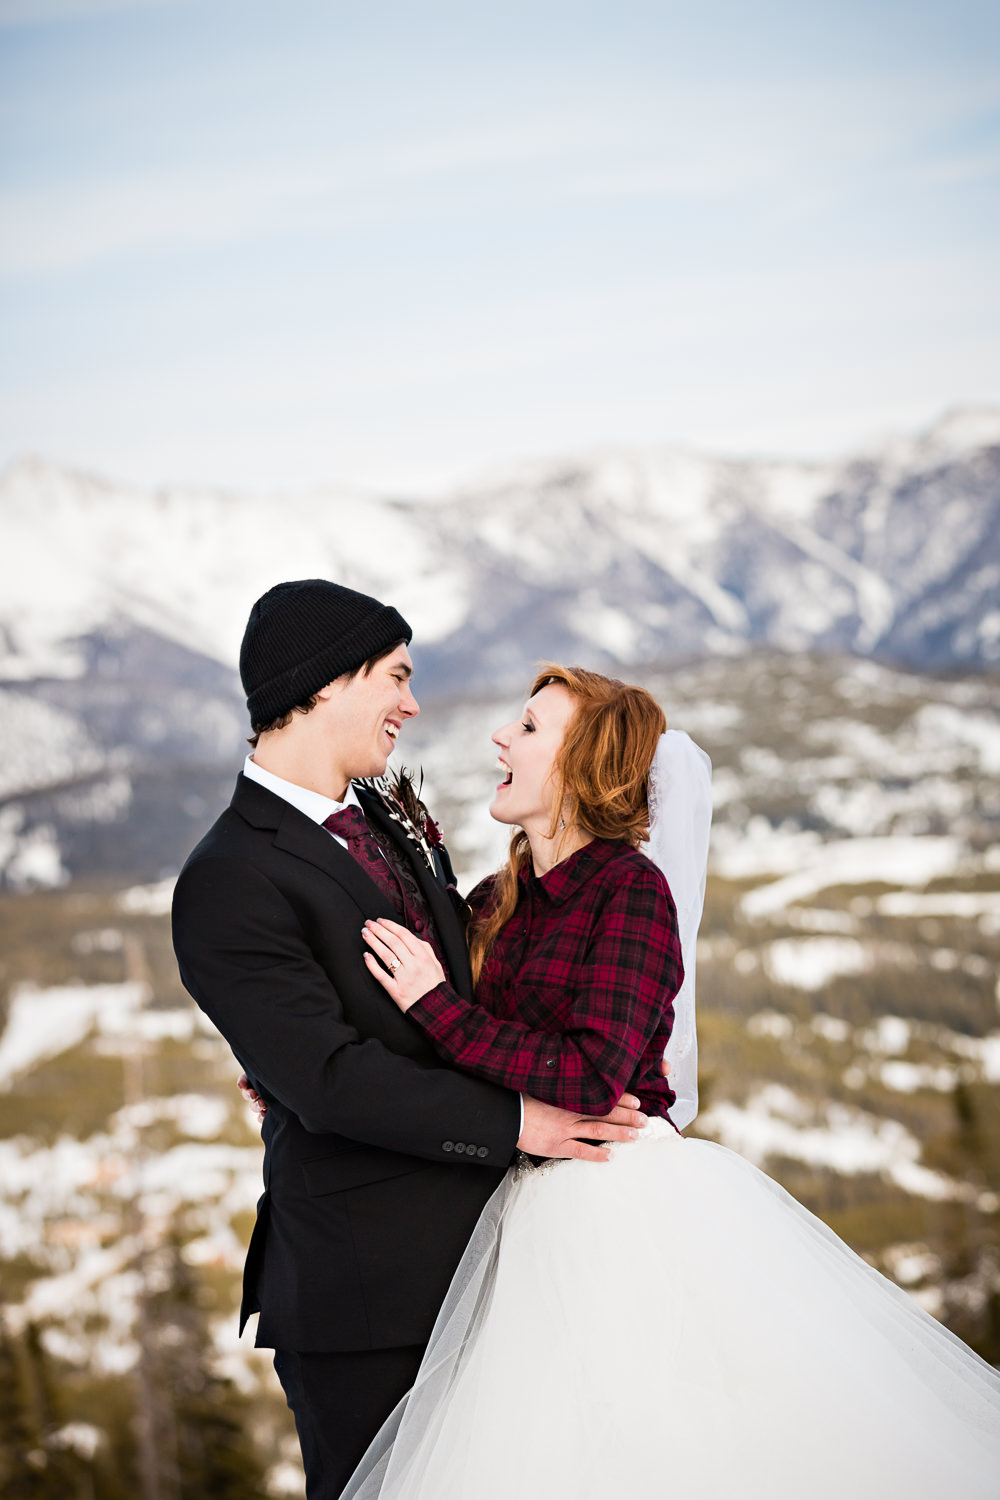 big-sky-montana-winter-wedding-breanna-formals-groom-bride-snowboarding.jpg